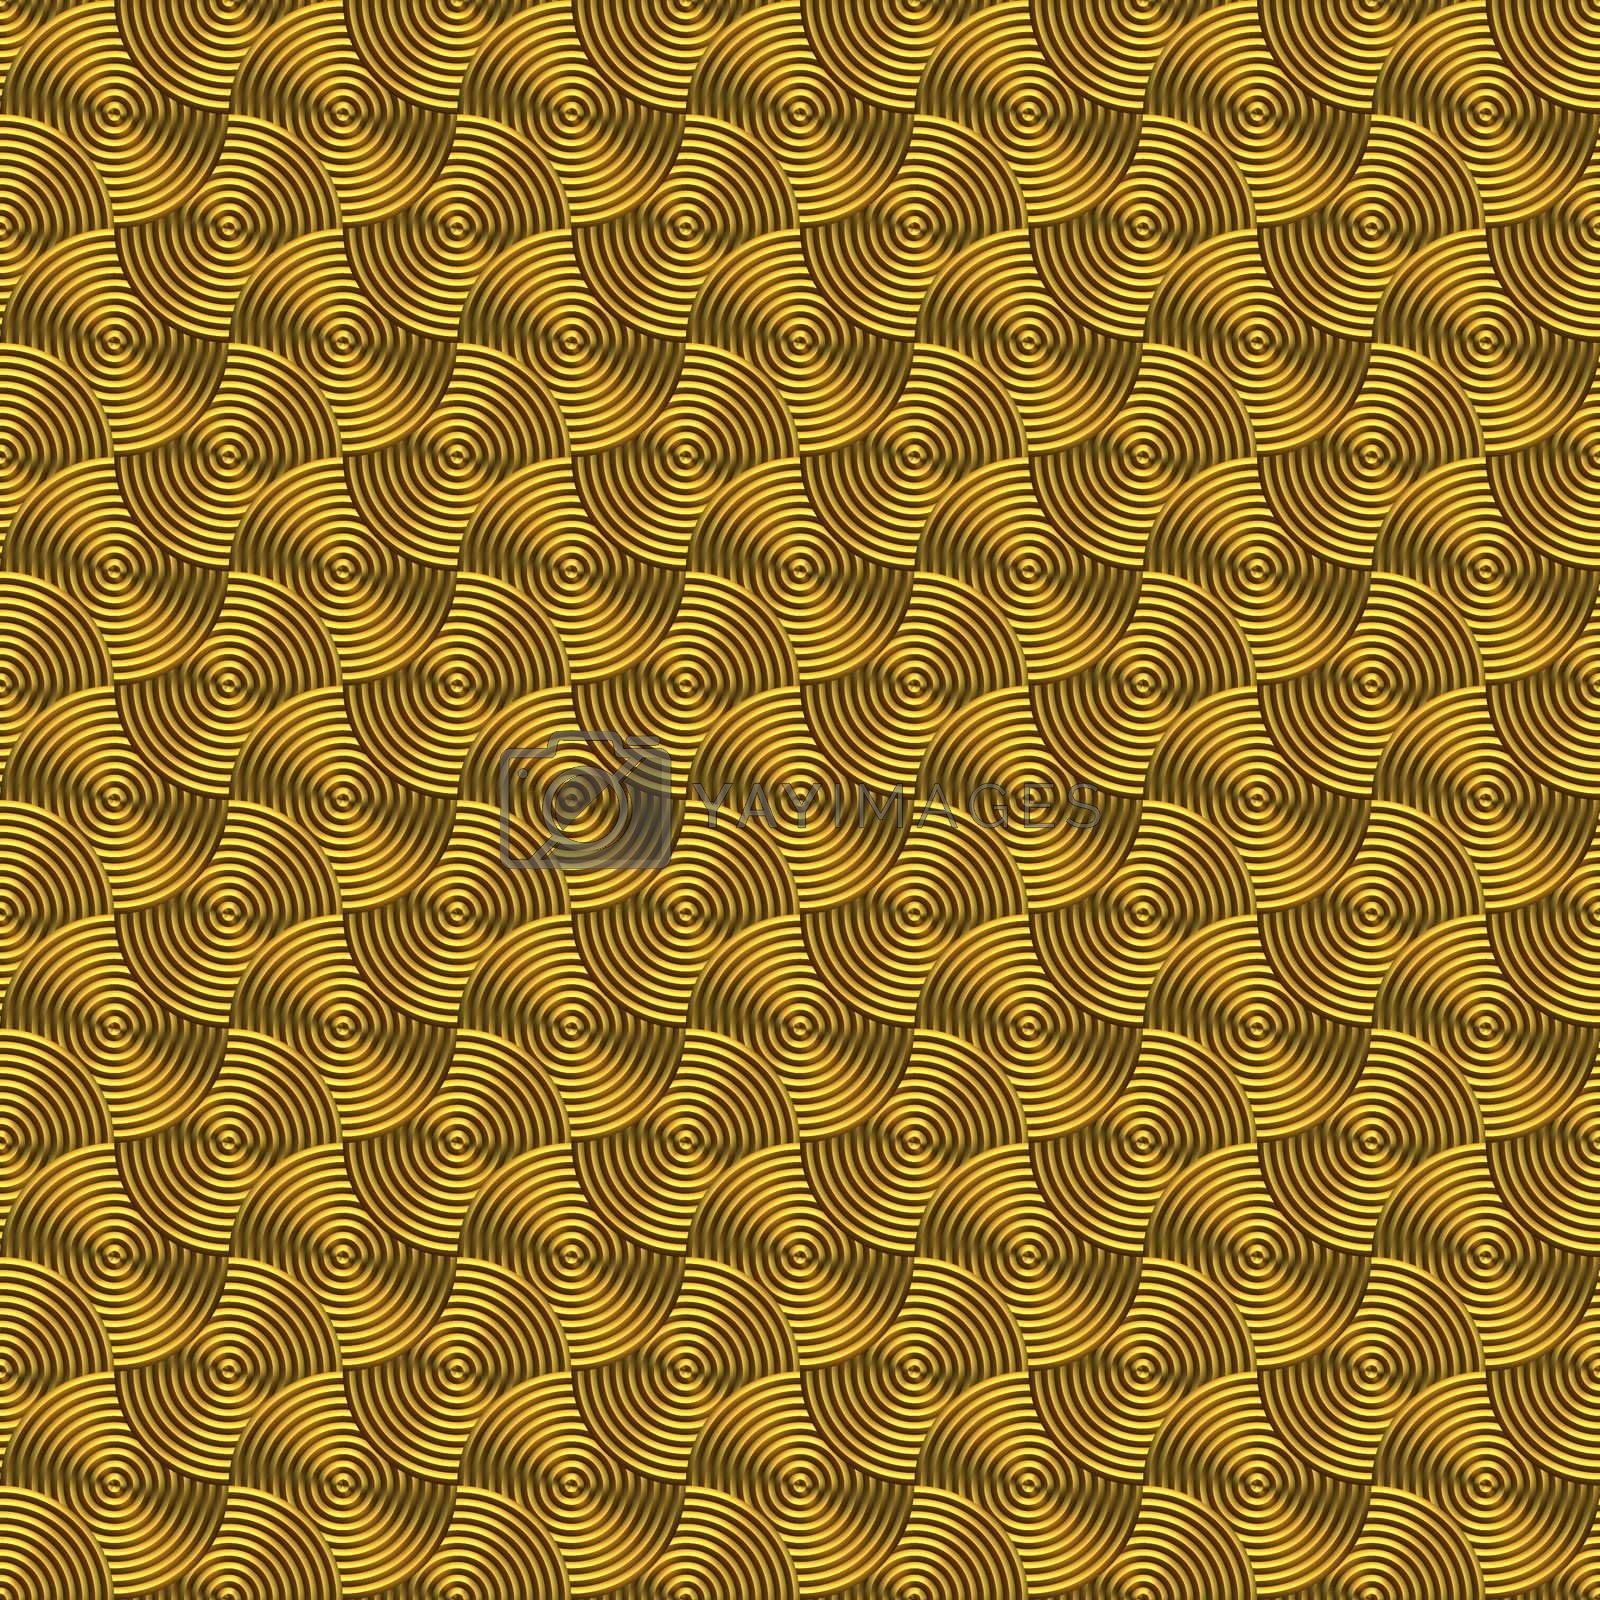 golden circles background, will tile seamlessly as a pattern